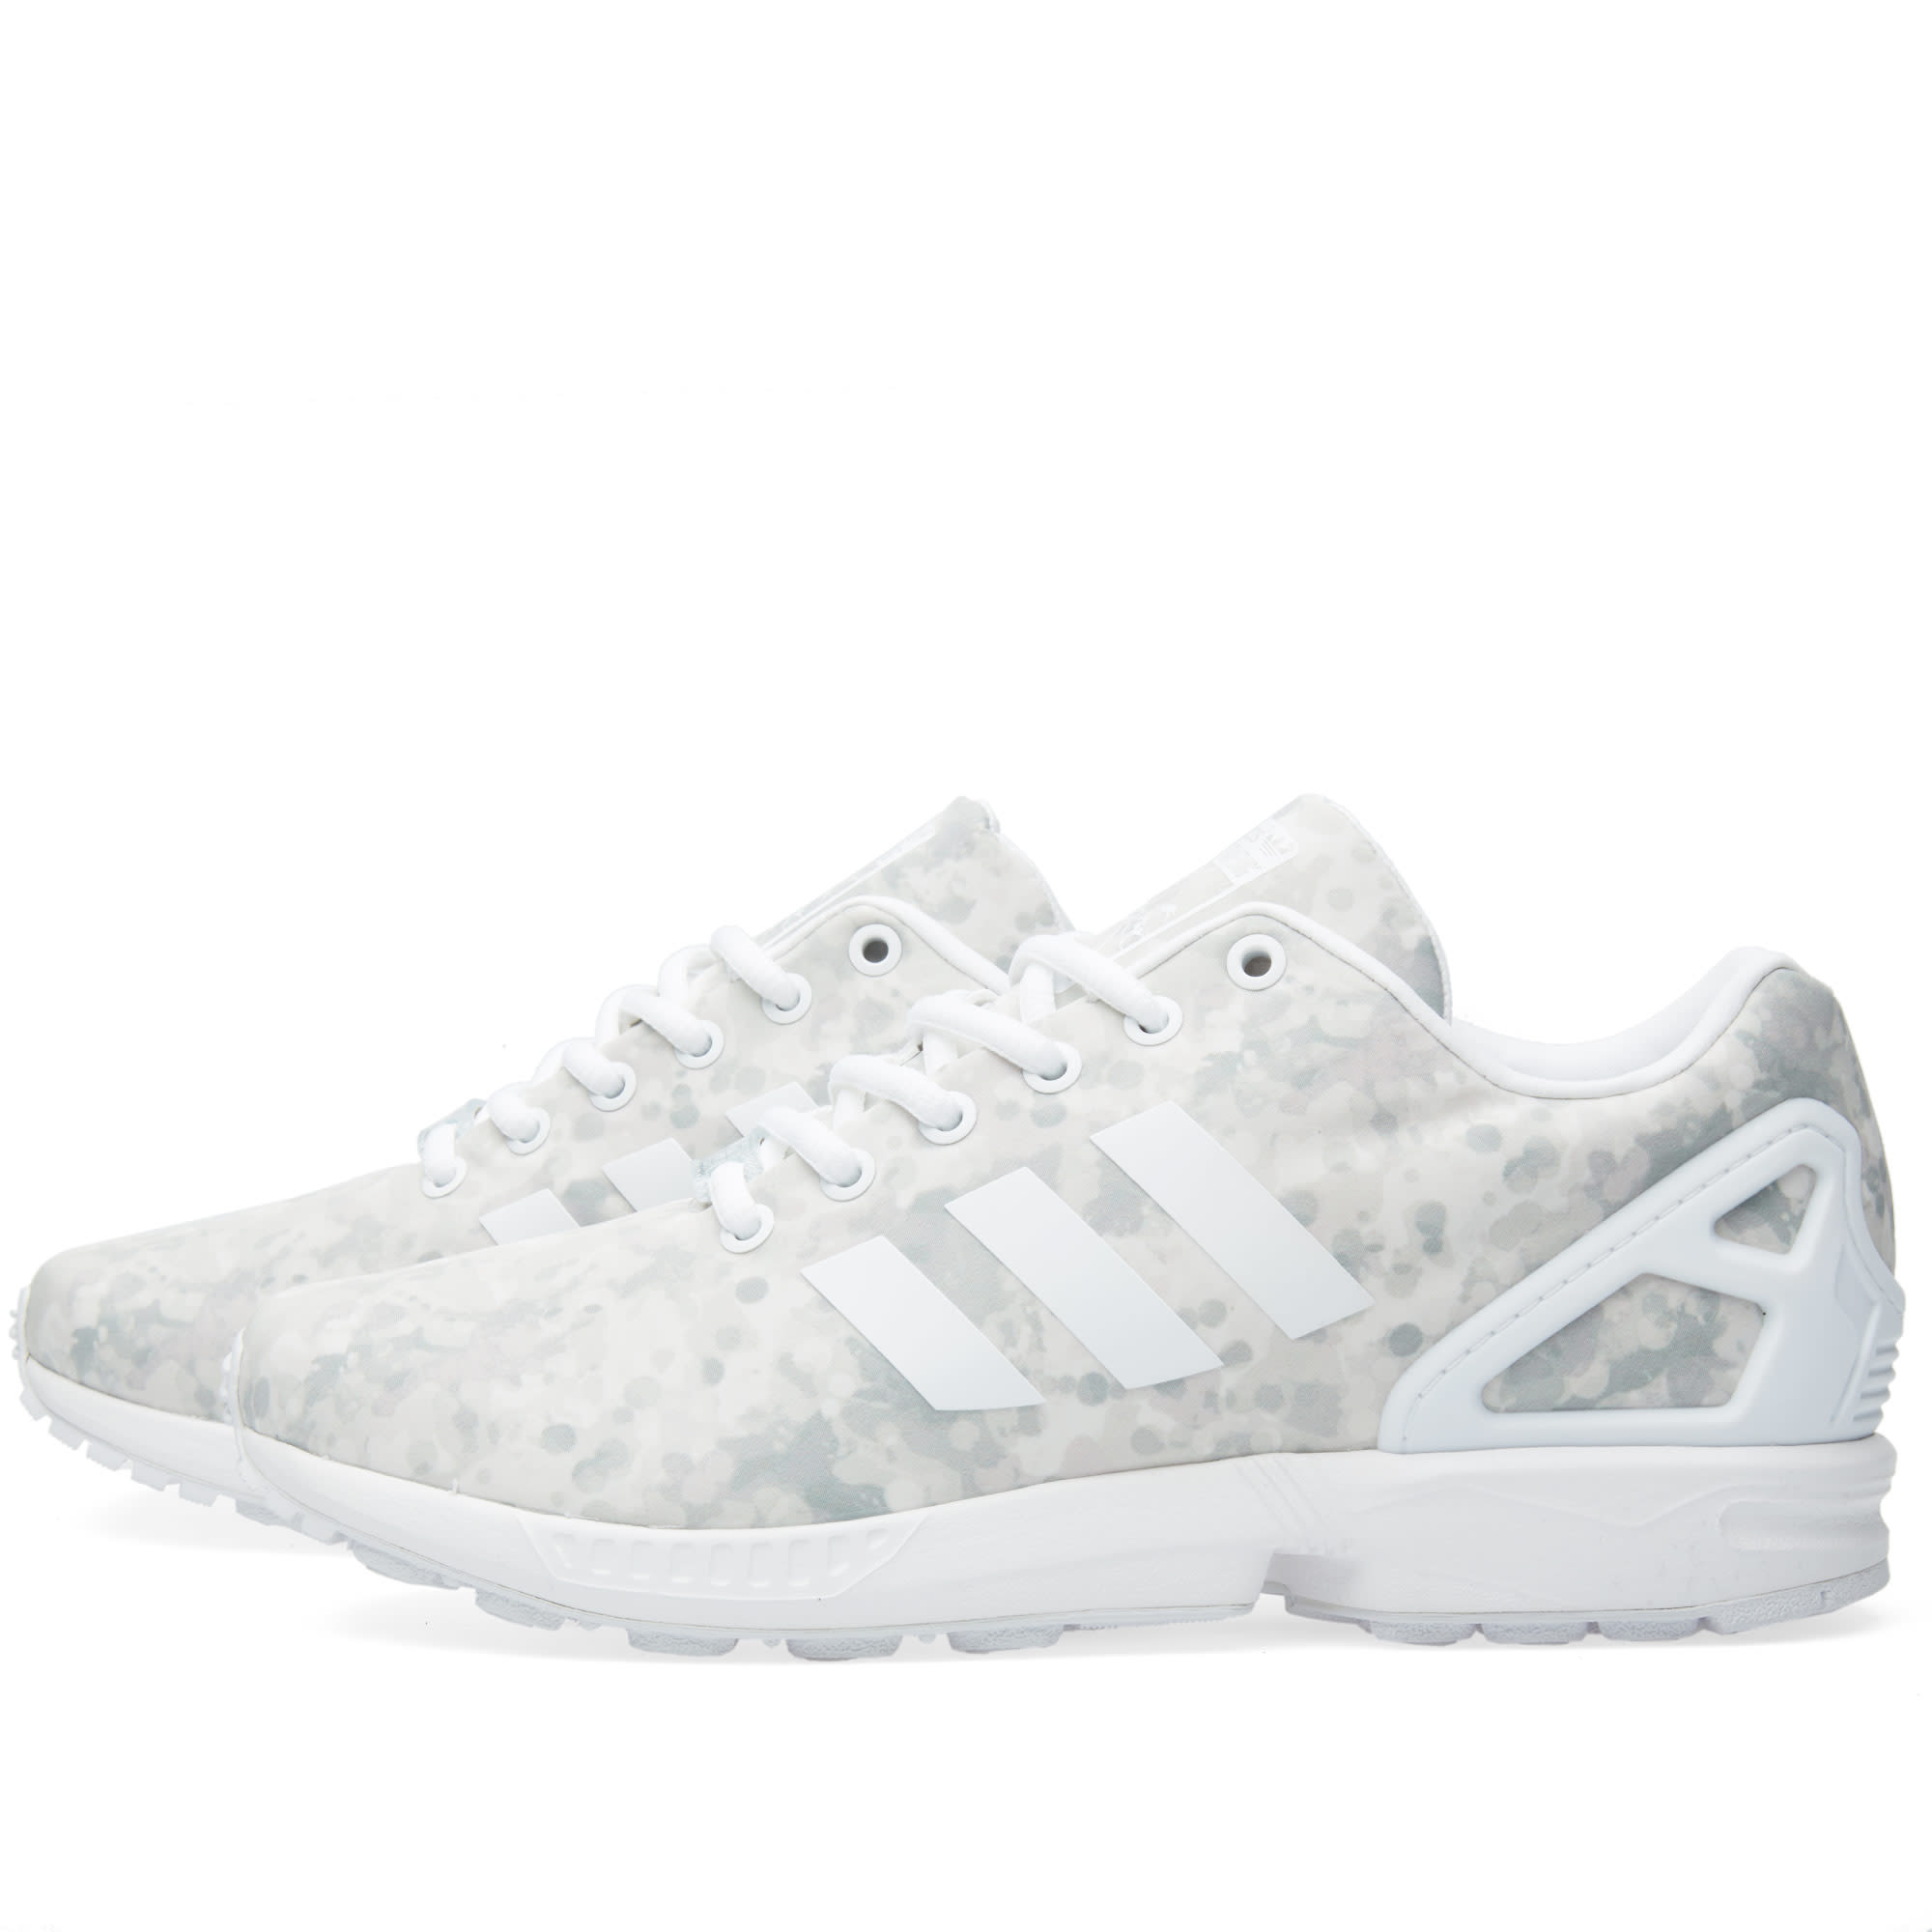 hot sale online 607a7 1d9a9 Adidas Consortium x White Mountaineering ZX Flux